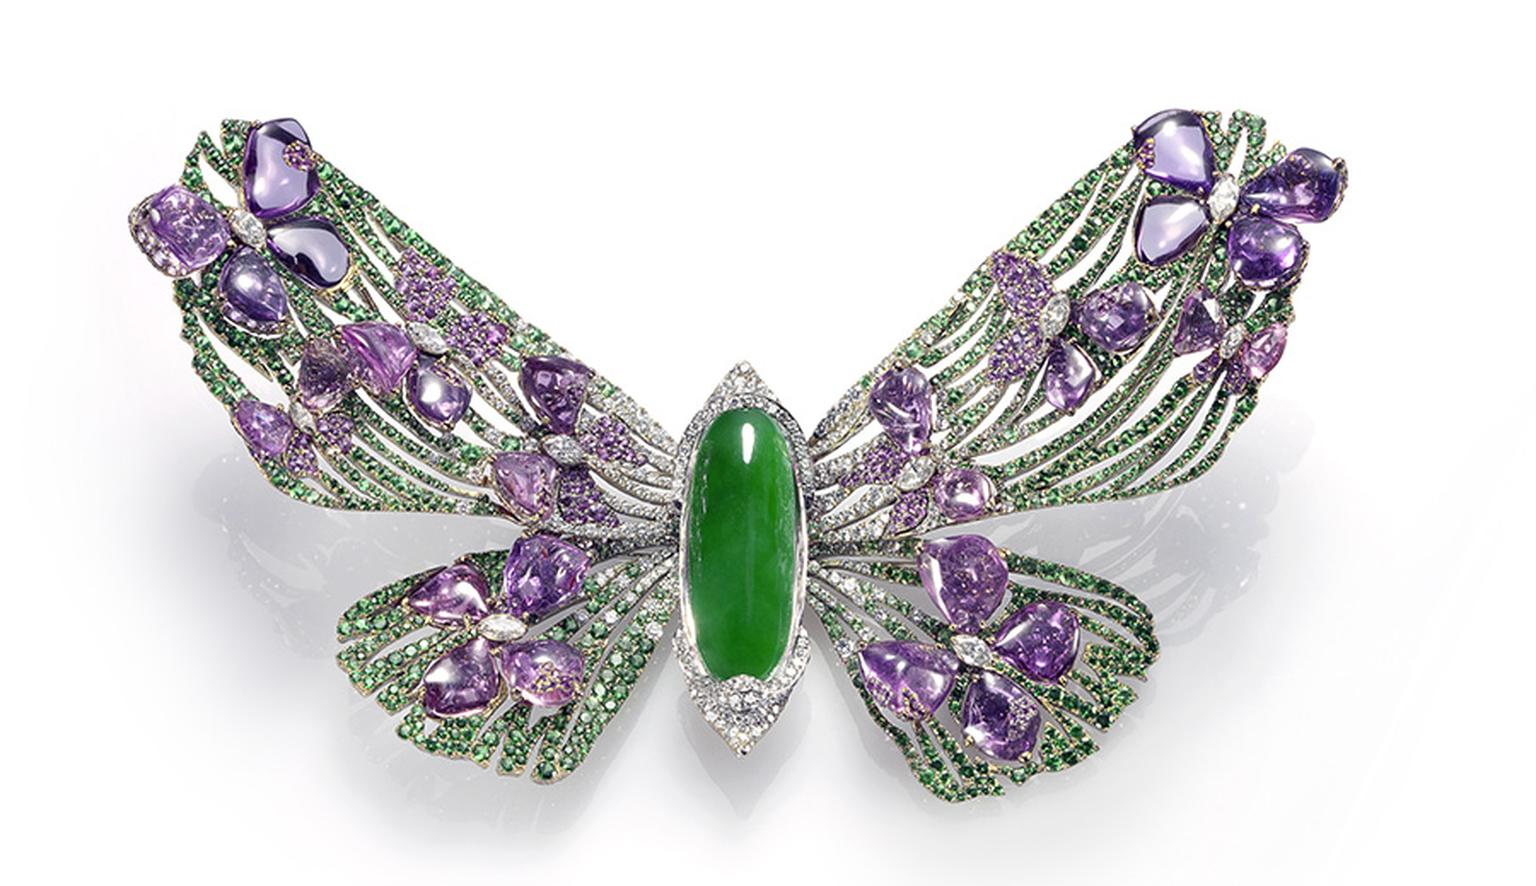 Wallace Chan Painted Lady brooch from the Fluttery Series, created for the Biennale des Antiquaires 2012 featuring jadeite, diamonds, pink sapphires and rubies.